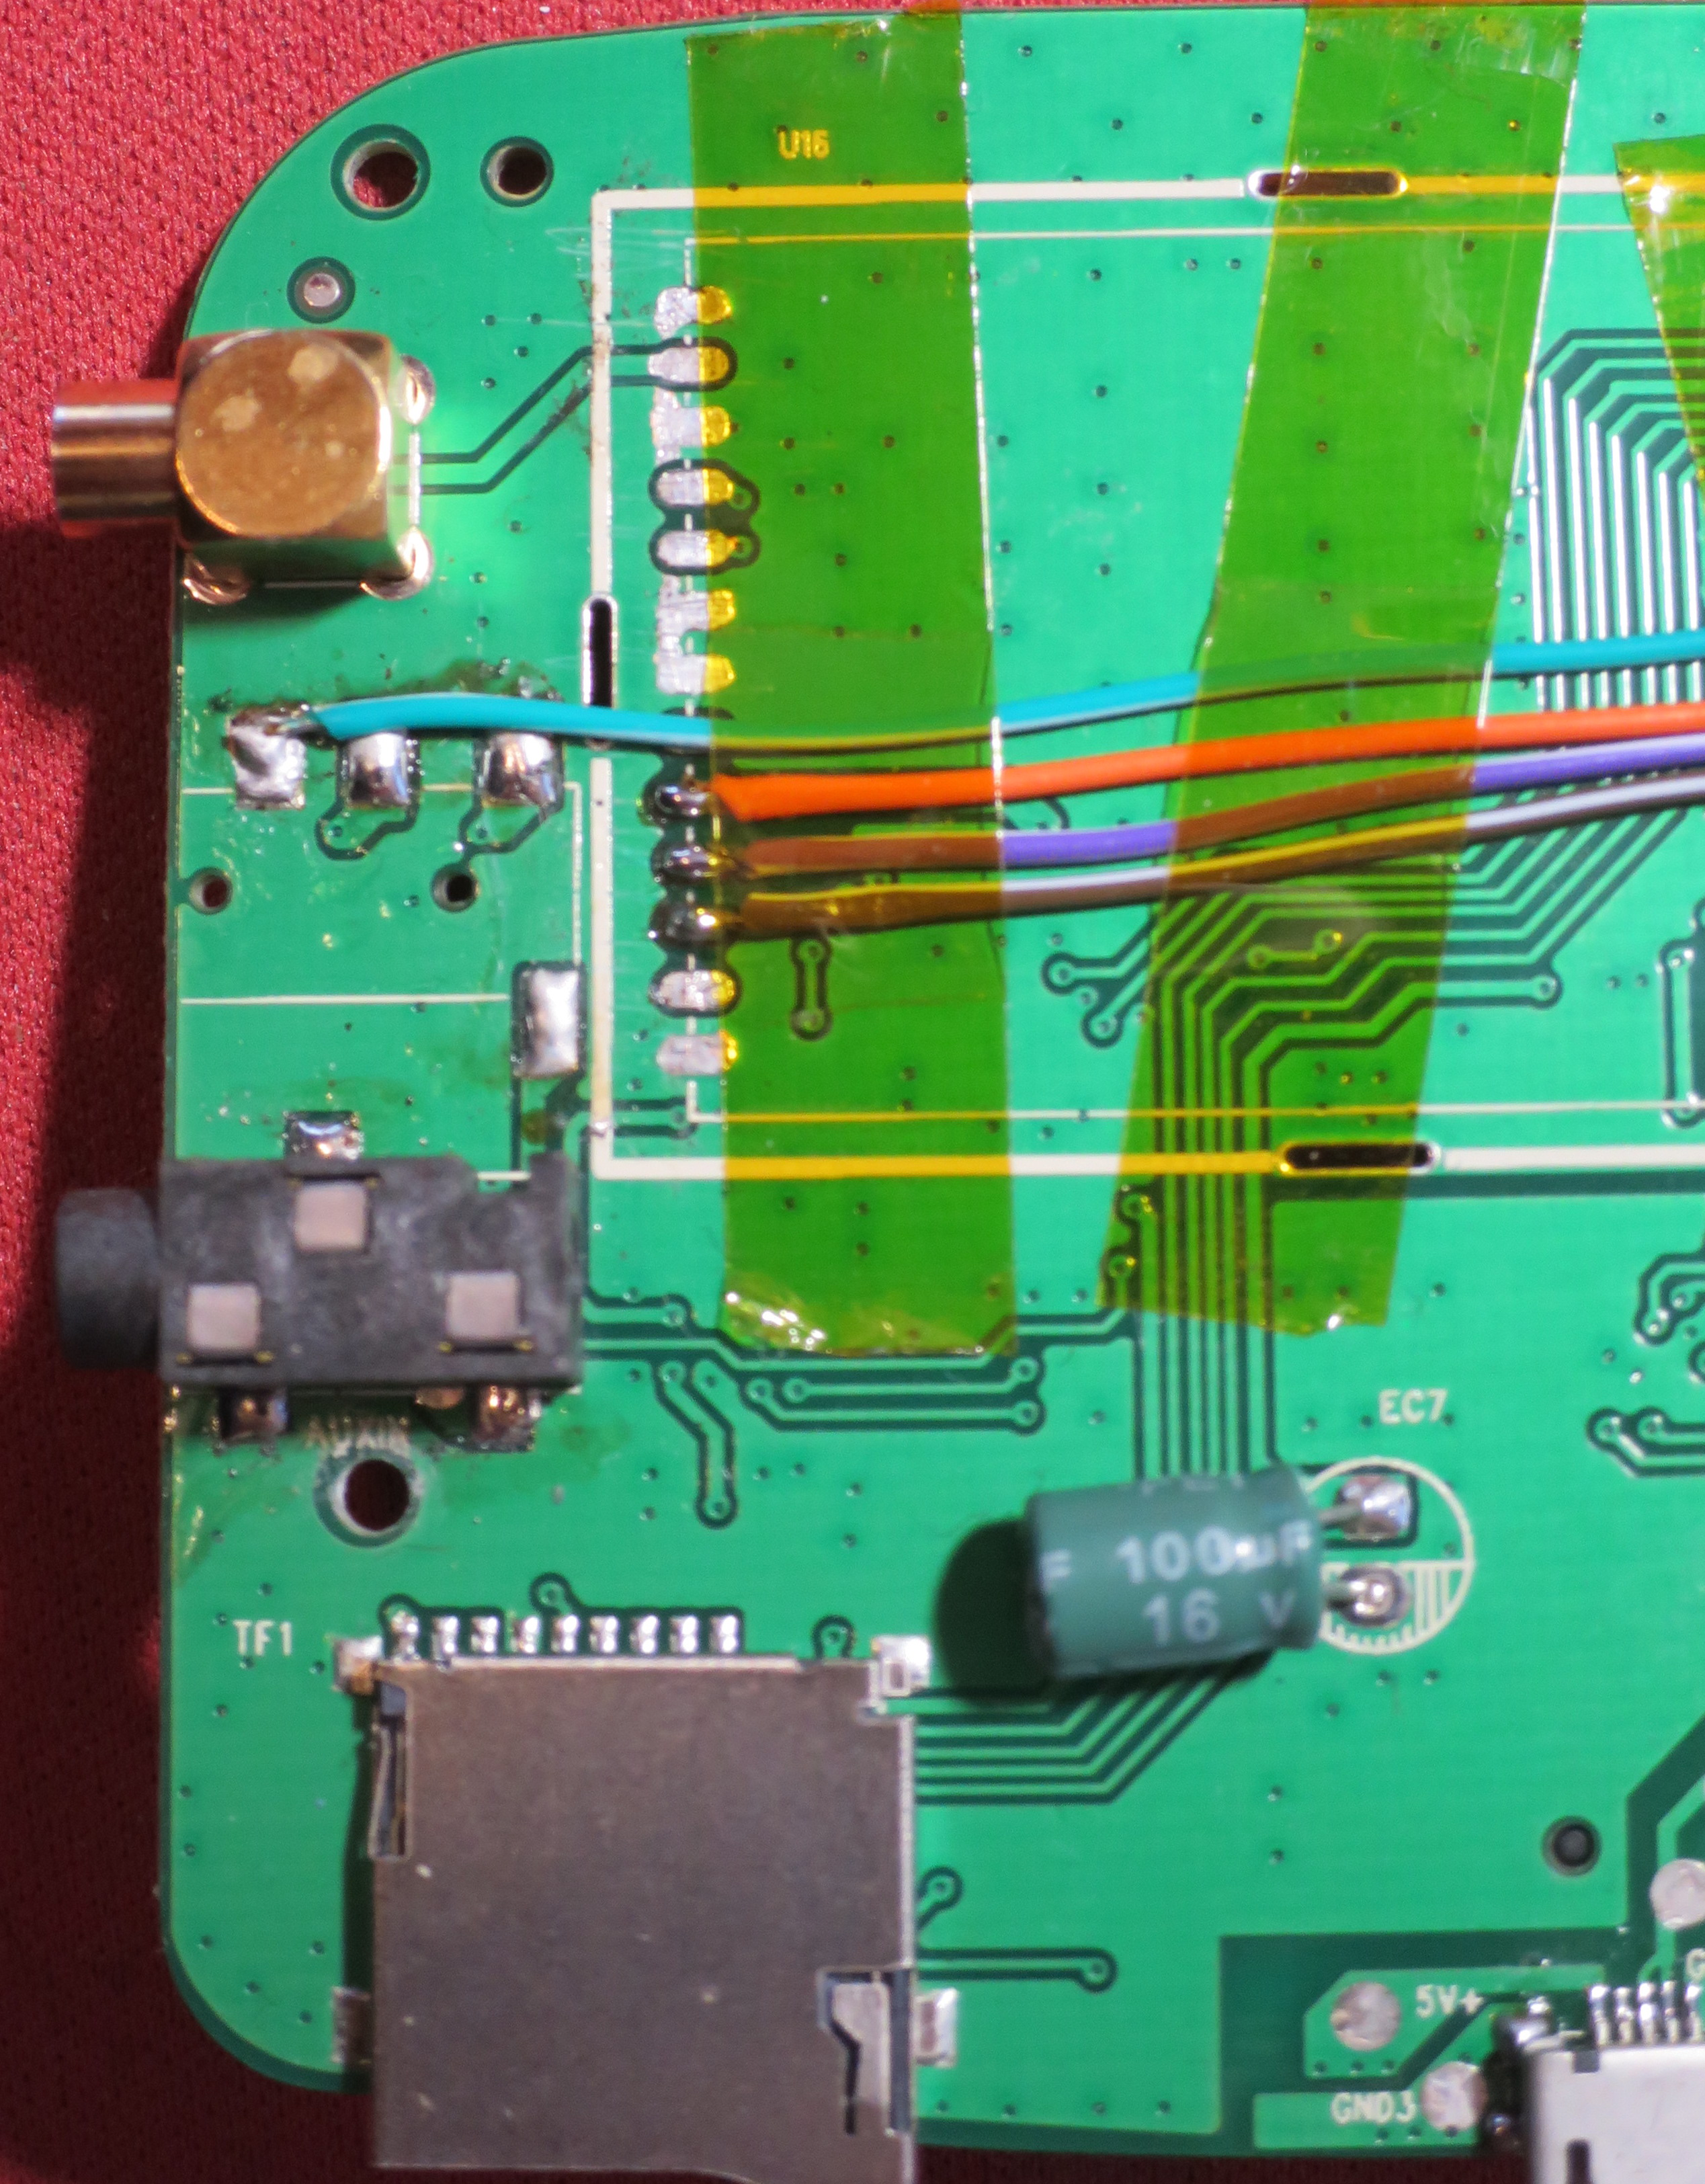 Breaking out the pins on the main board